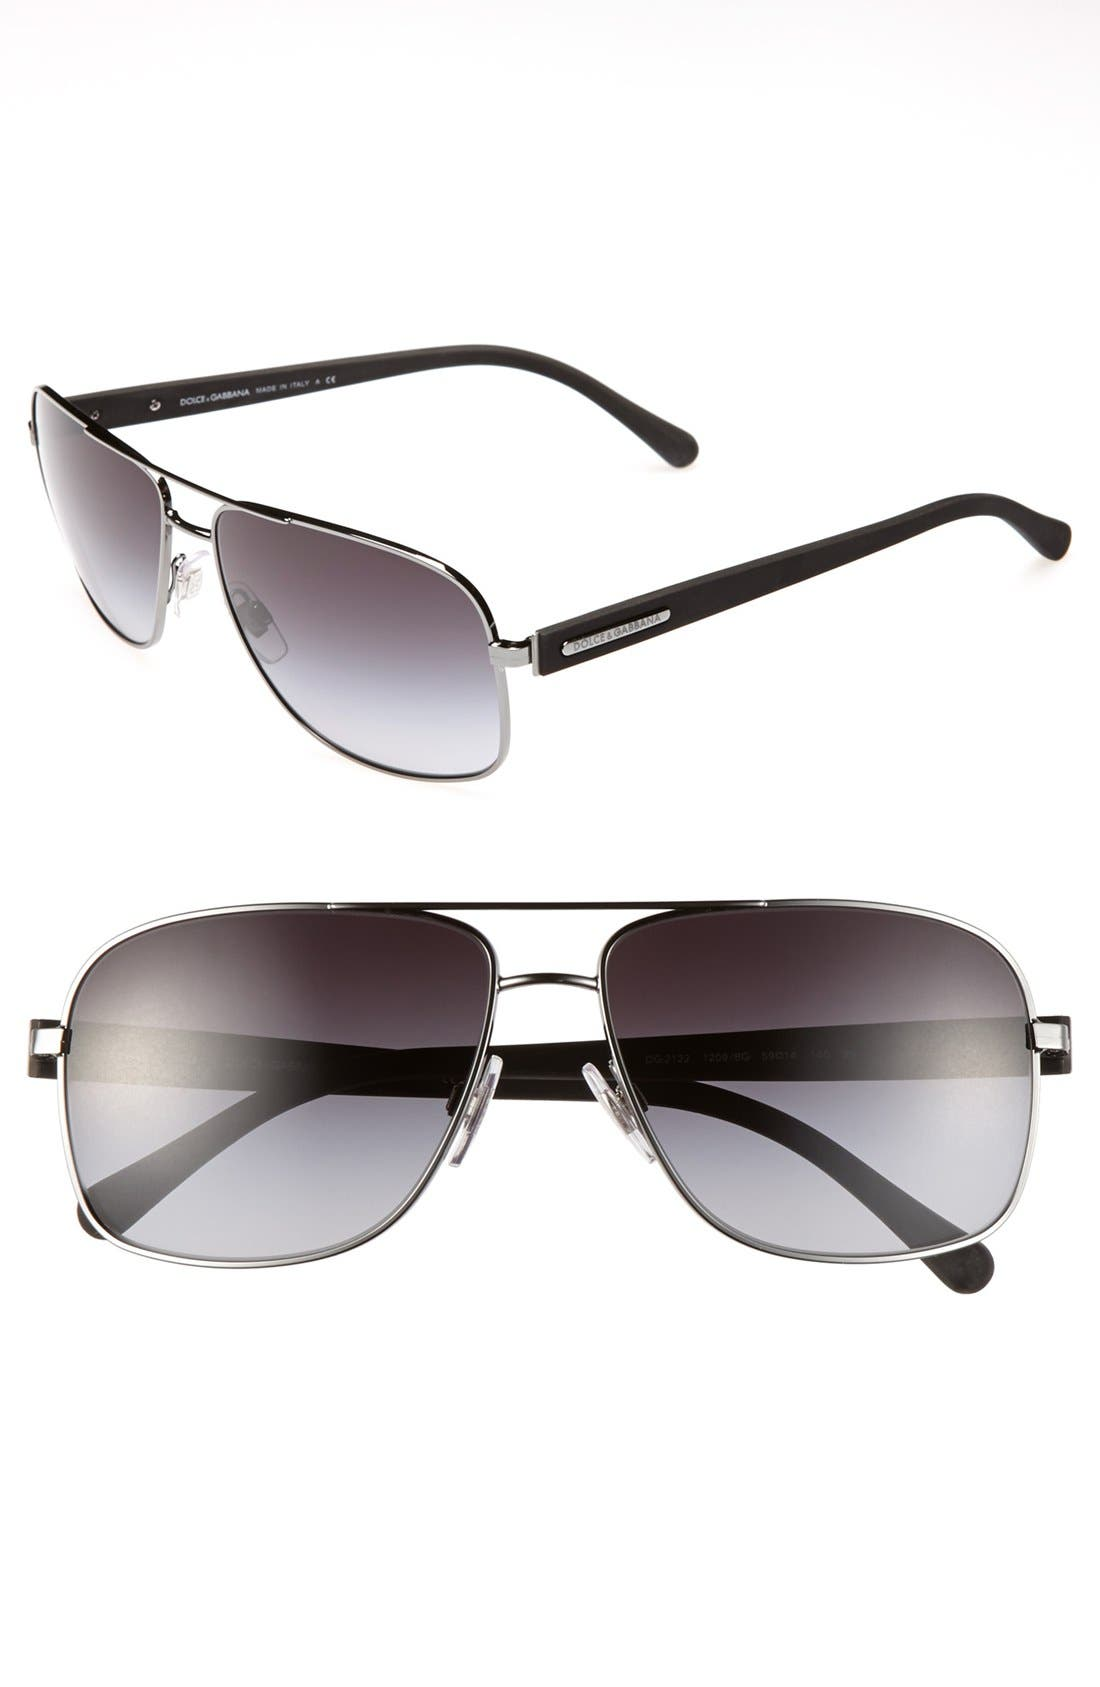 Main Image - Dolce&Gabbana 59mm Square Sunglasses